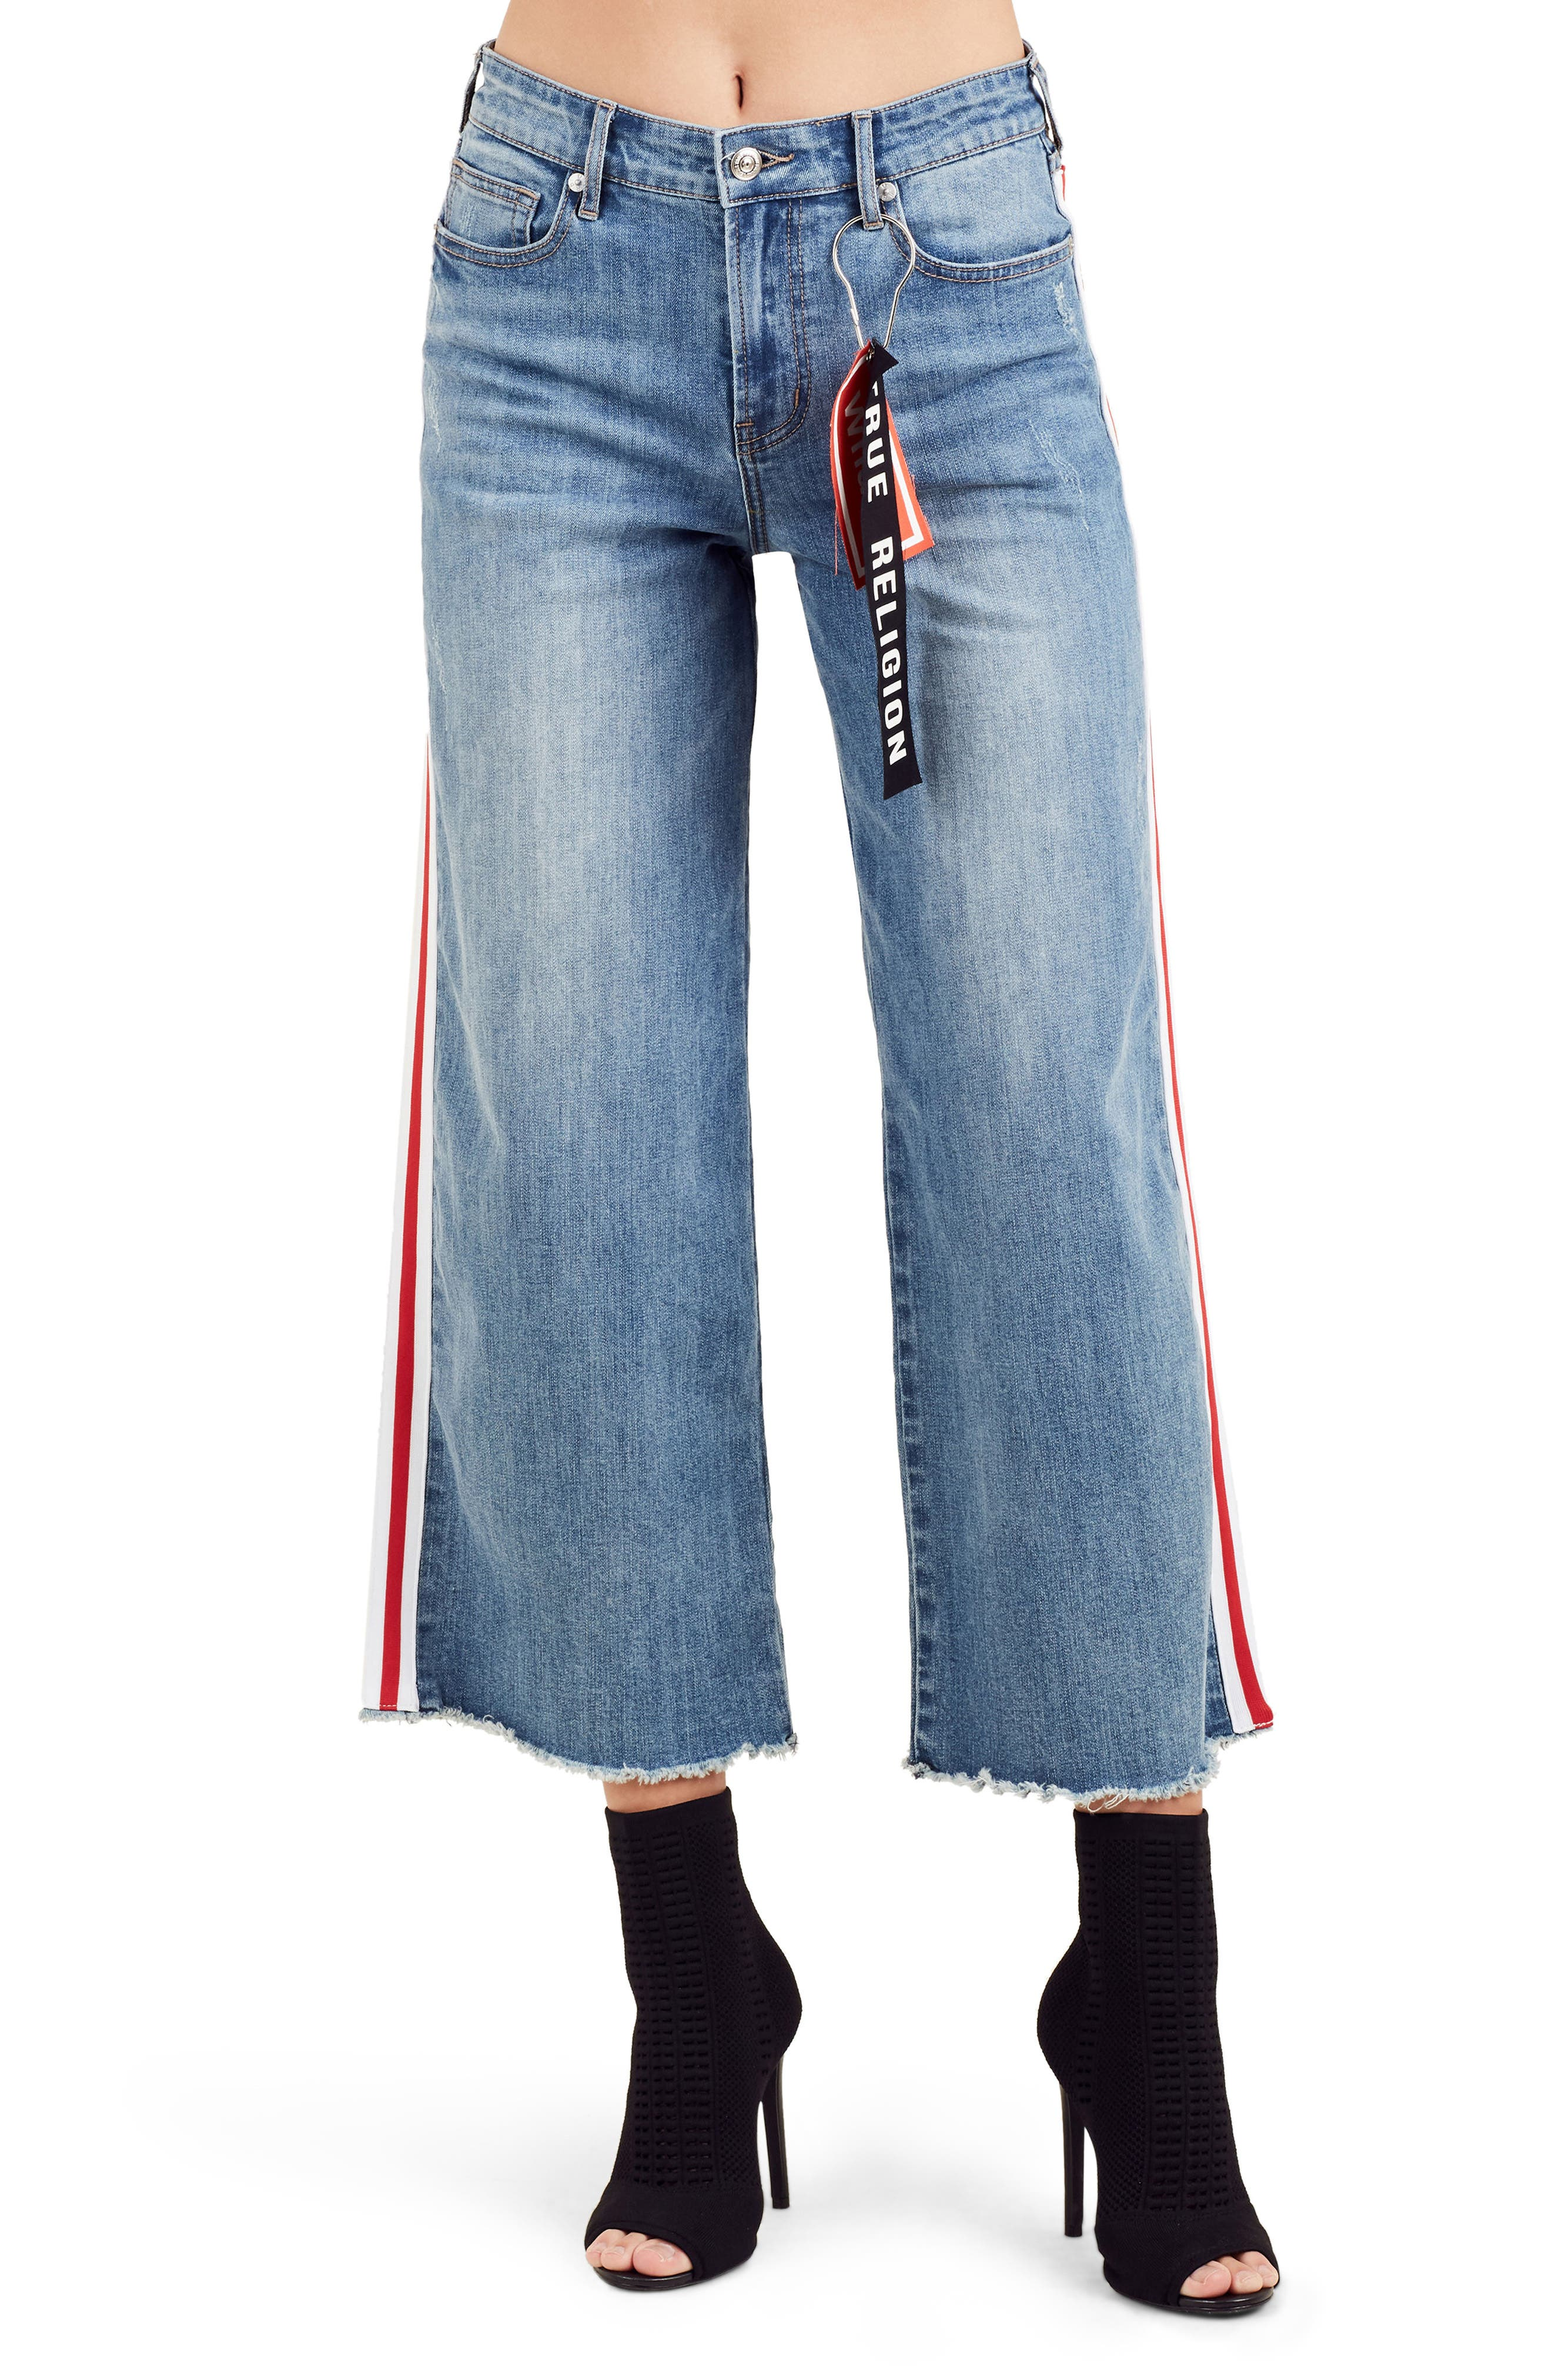 True Religion Athletic Stovepipe Crop Wide Leg Jeans (Wishing Well)